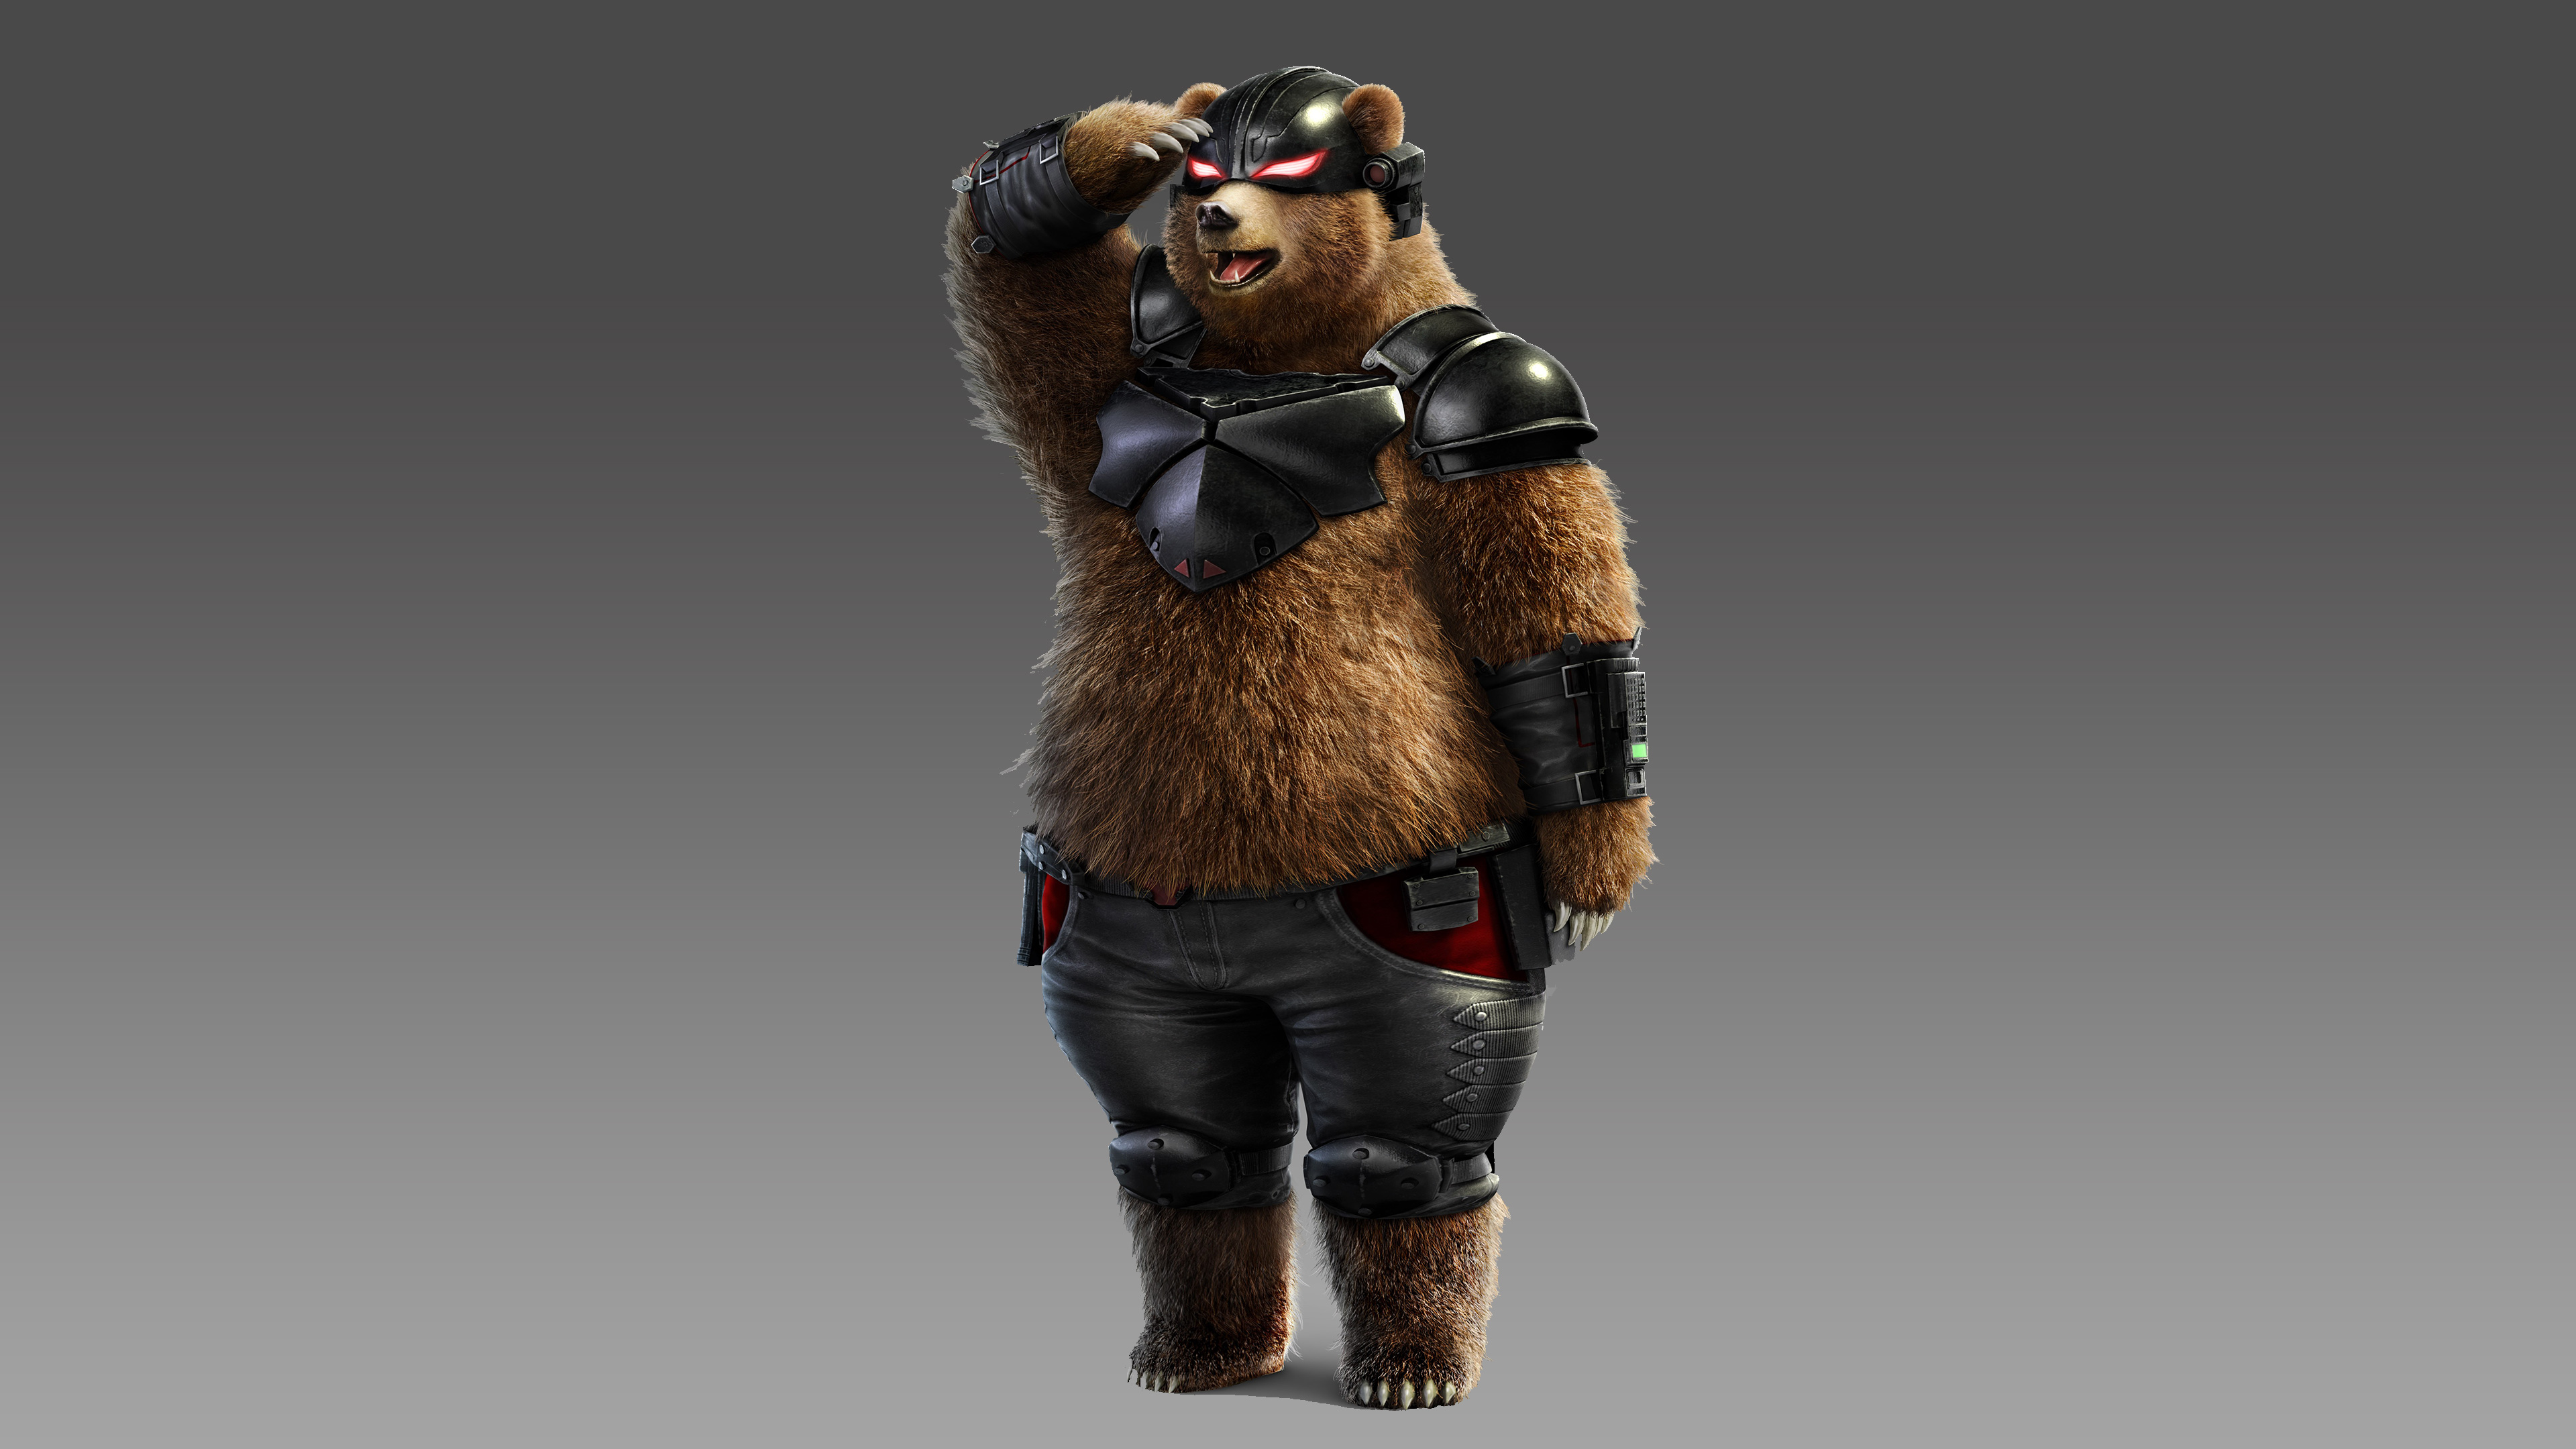 Tekken 7 Kuma And Panda 4k Hd Games 4k Wallpapers Images